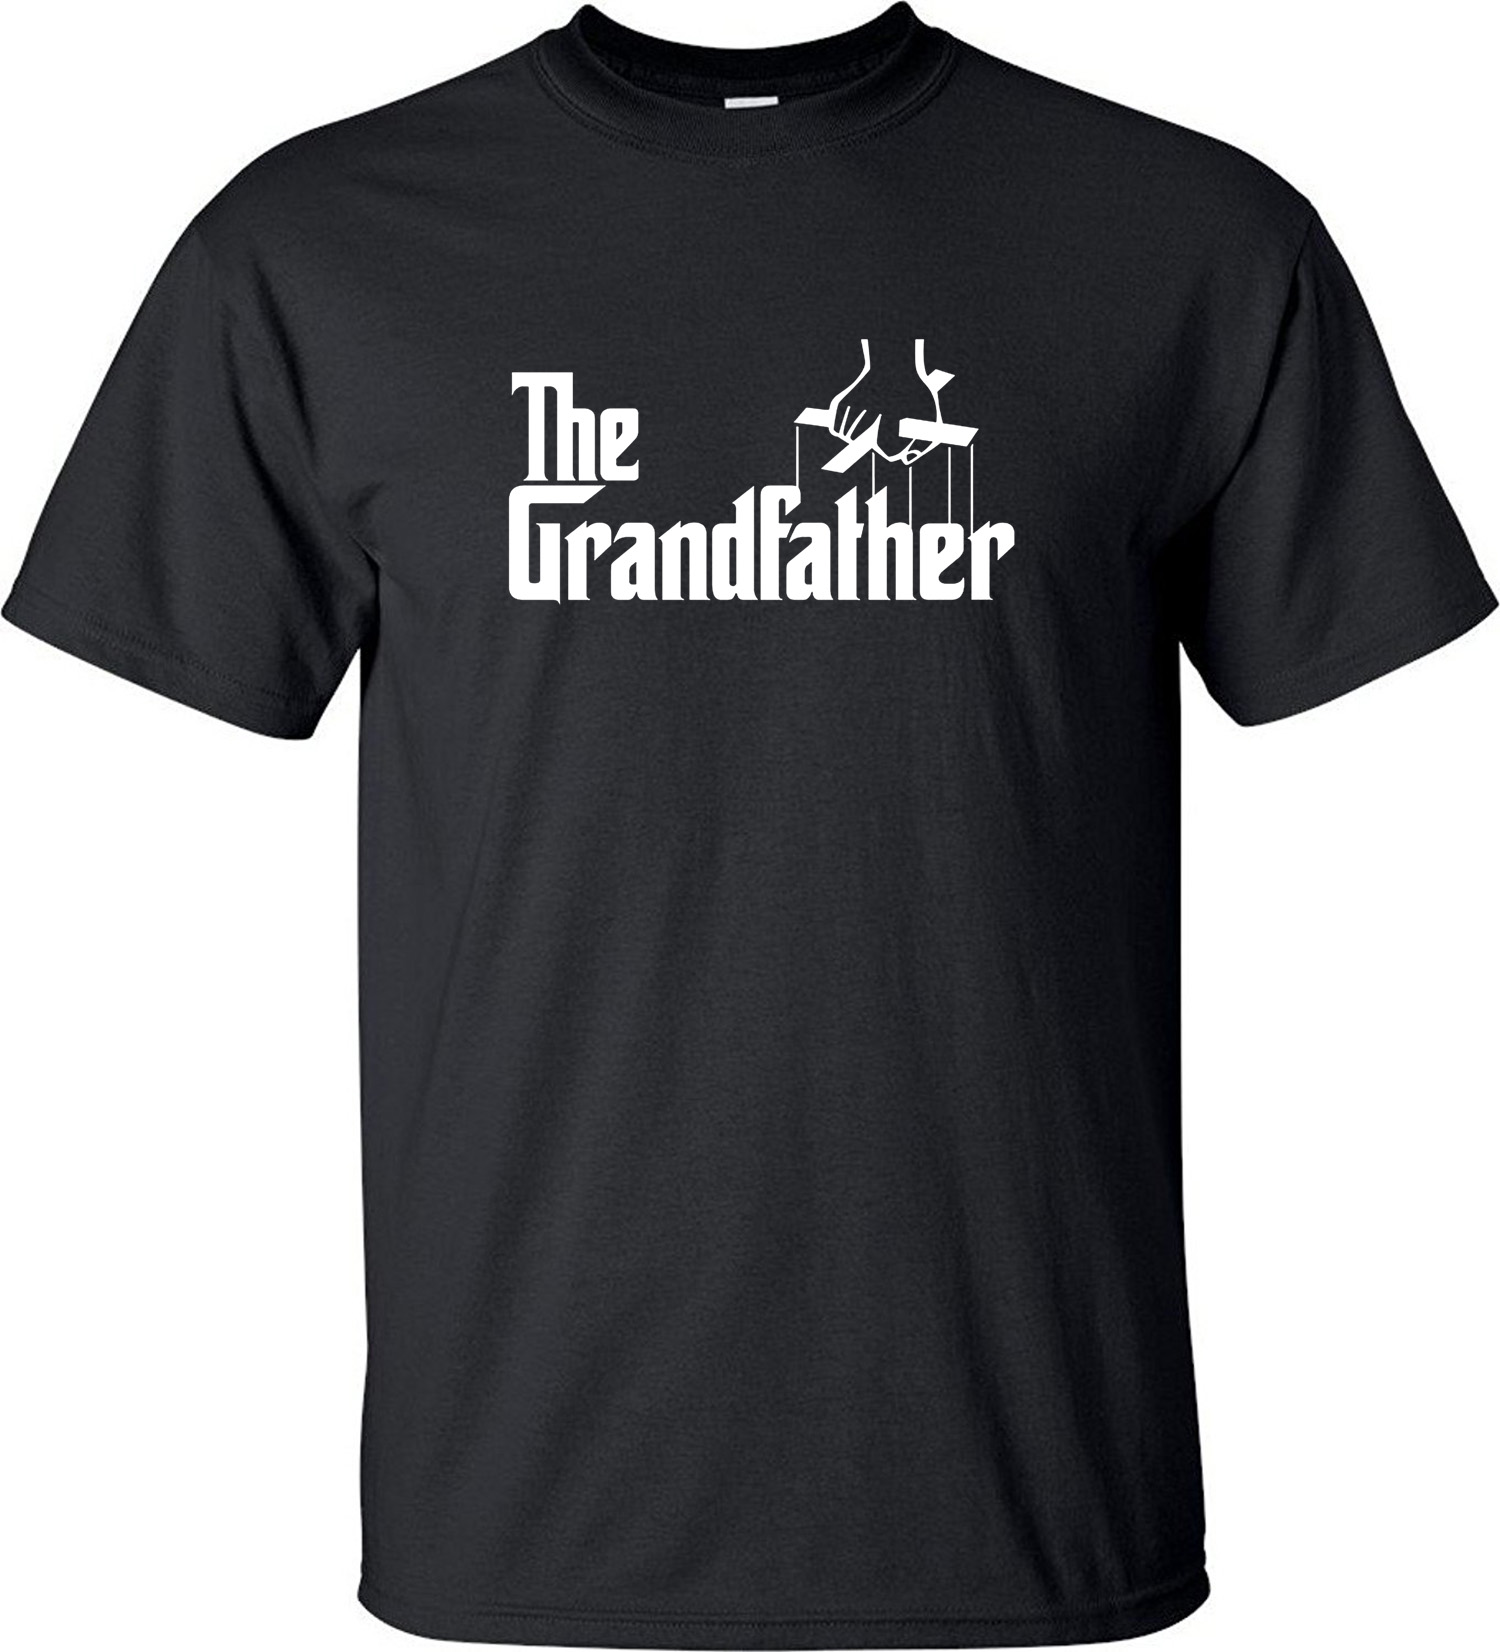 Godfather Inspired T Shirt The GrandFather Gift For Grandpa Best Birthday Grandparents Men